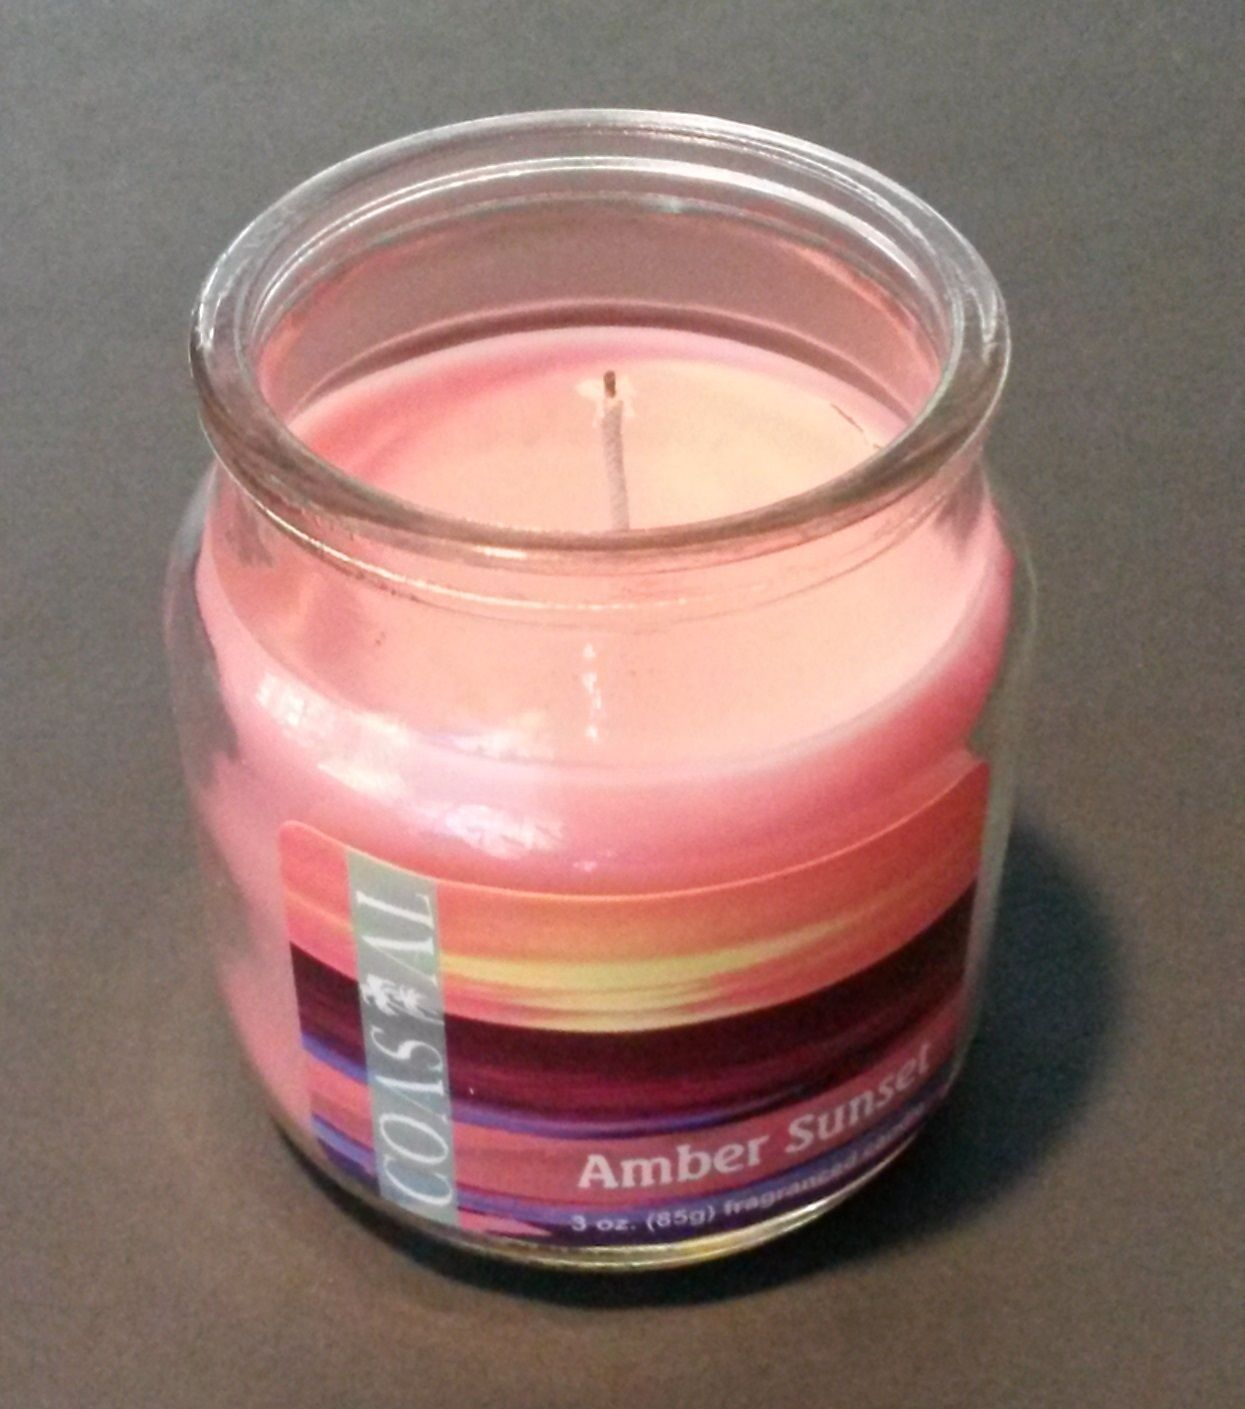 Fragranced Candle in Glass Jar Pink Amber Sunset Scented 3 oz NEW